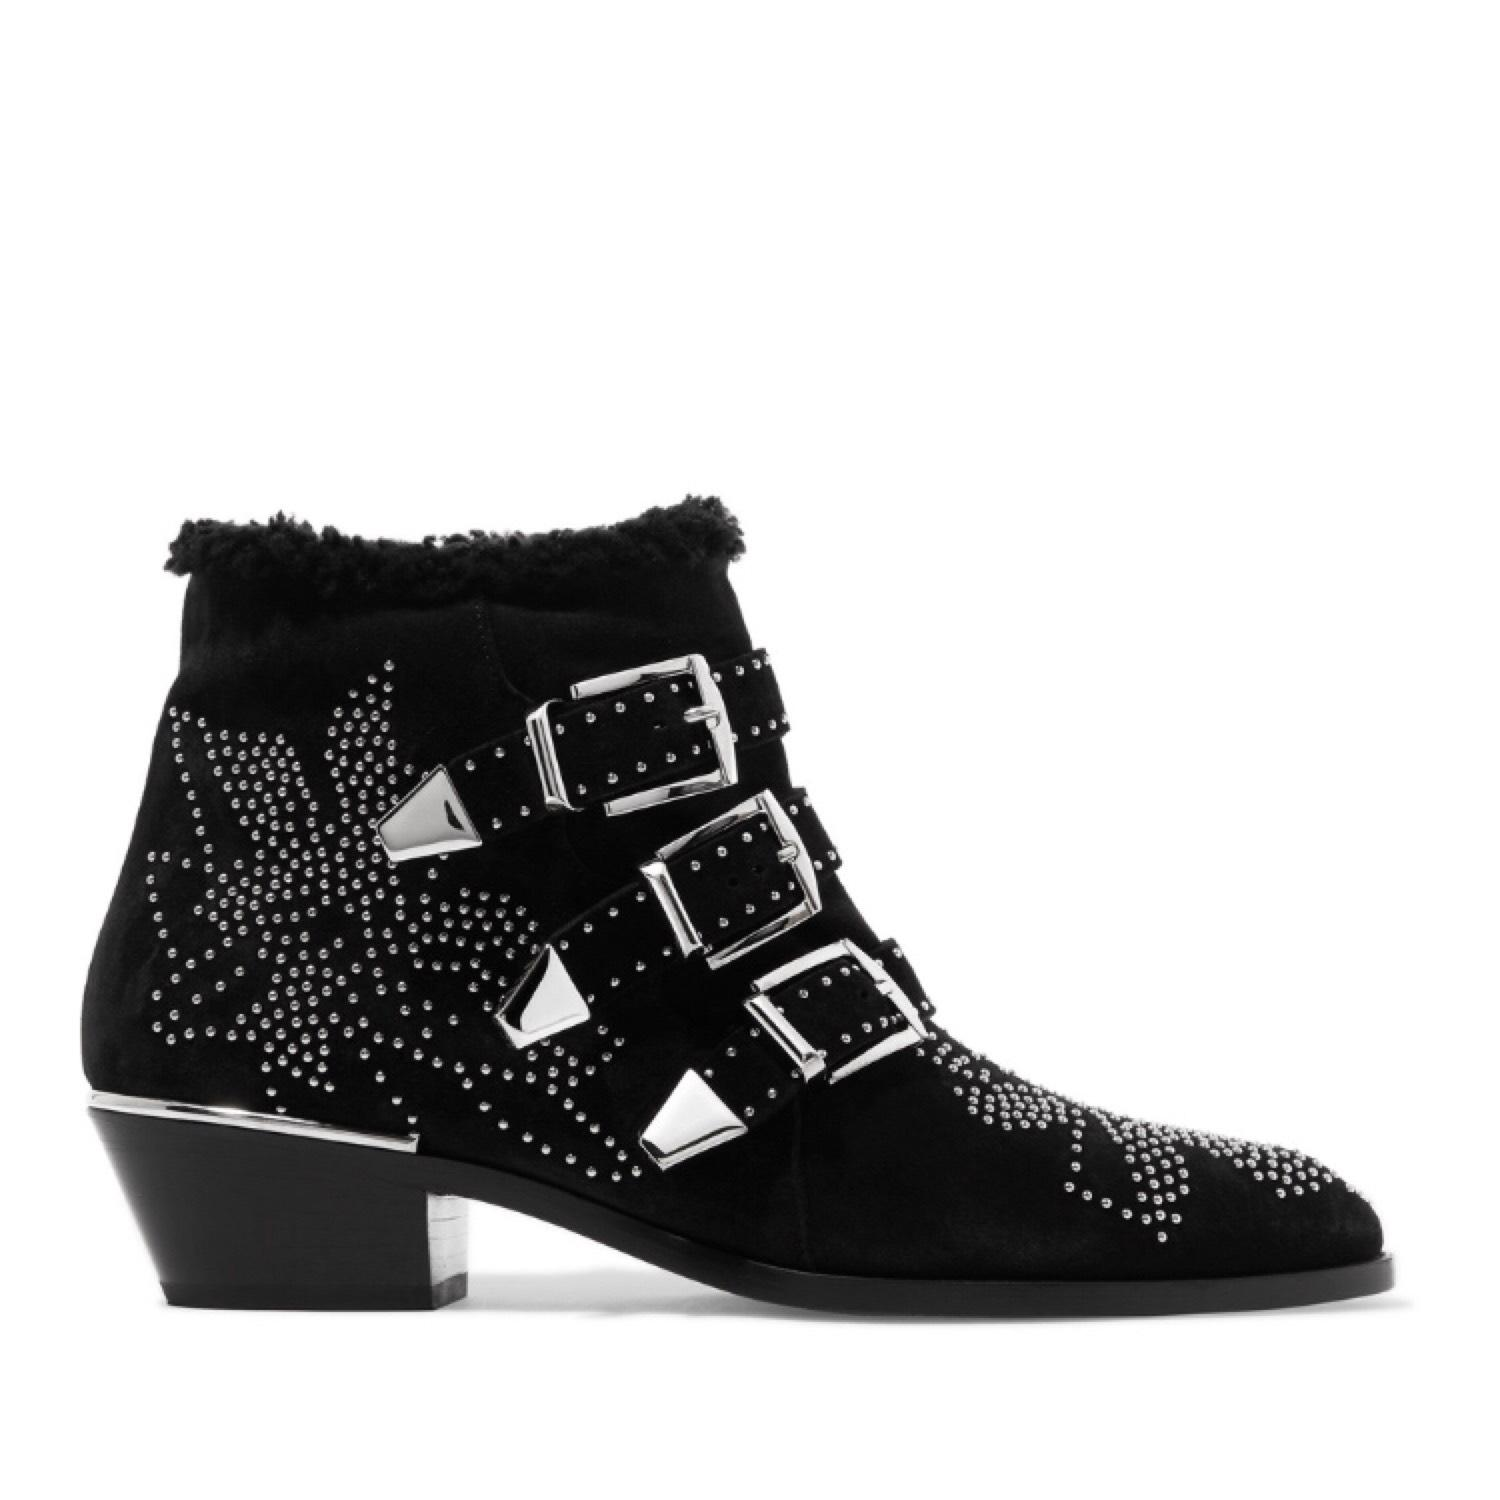 b172be2732eb Chloé Susanna Sterling Lined Studded Ankle Boots Booties Size US US US 7  Regular (